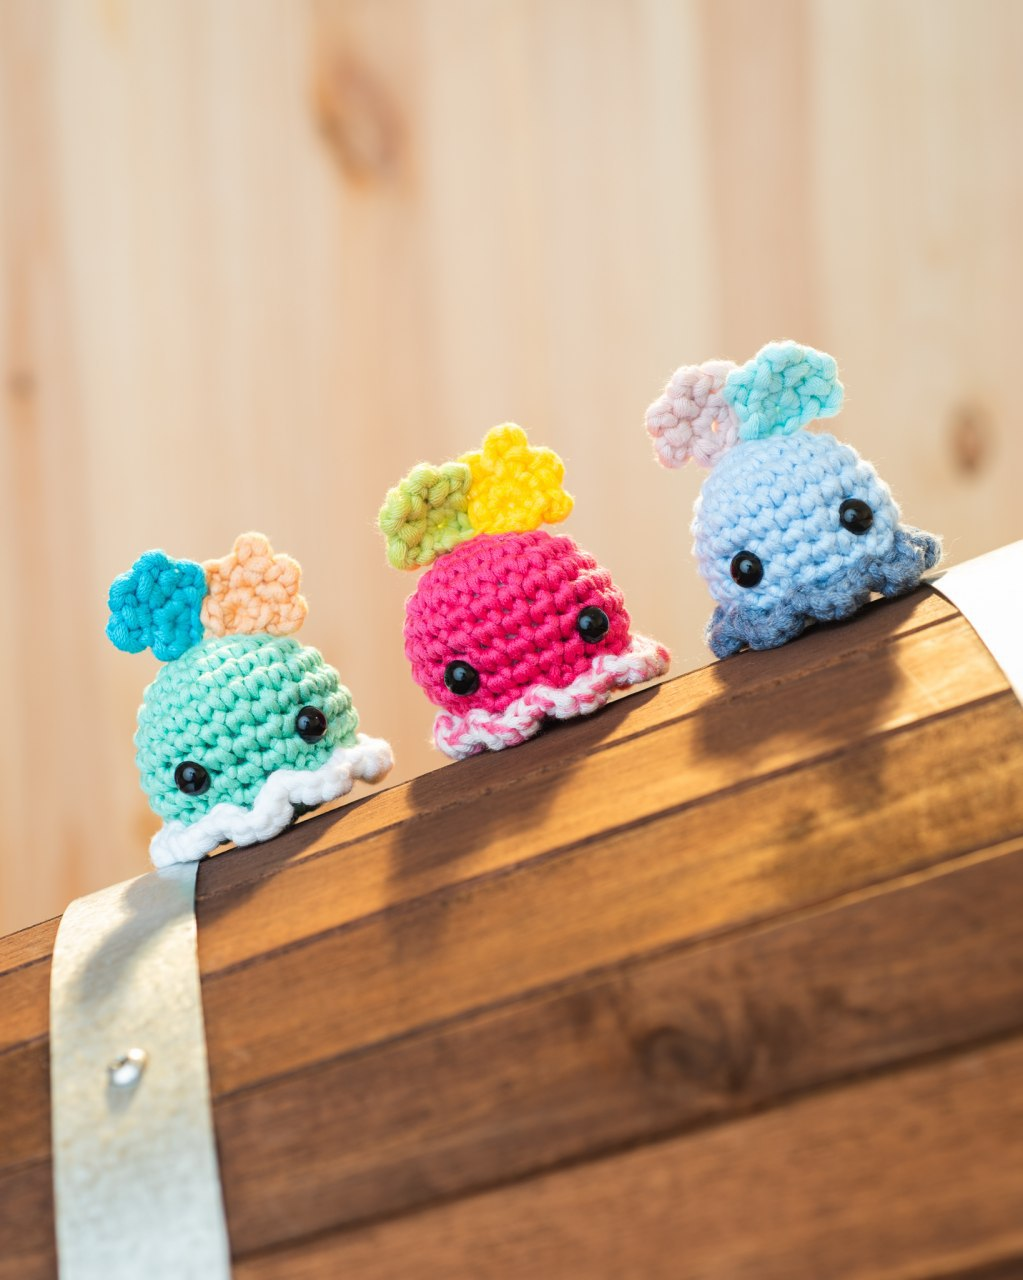 Learn Crochet Online with Tiny Rabbit Hole